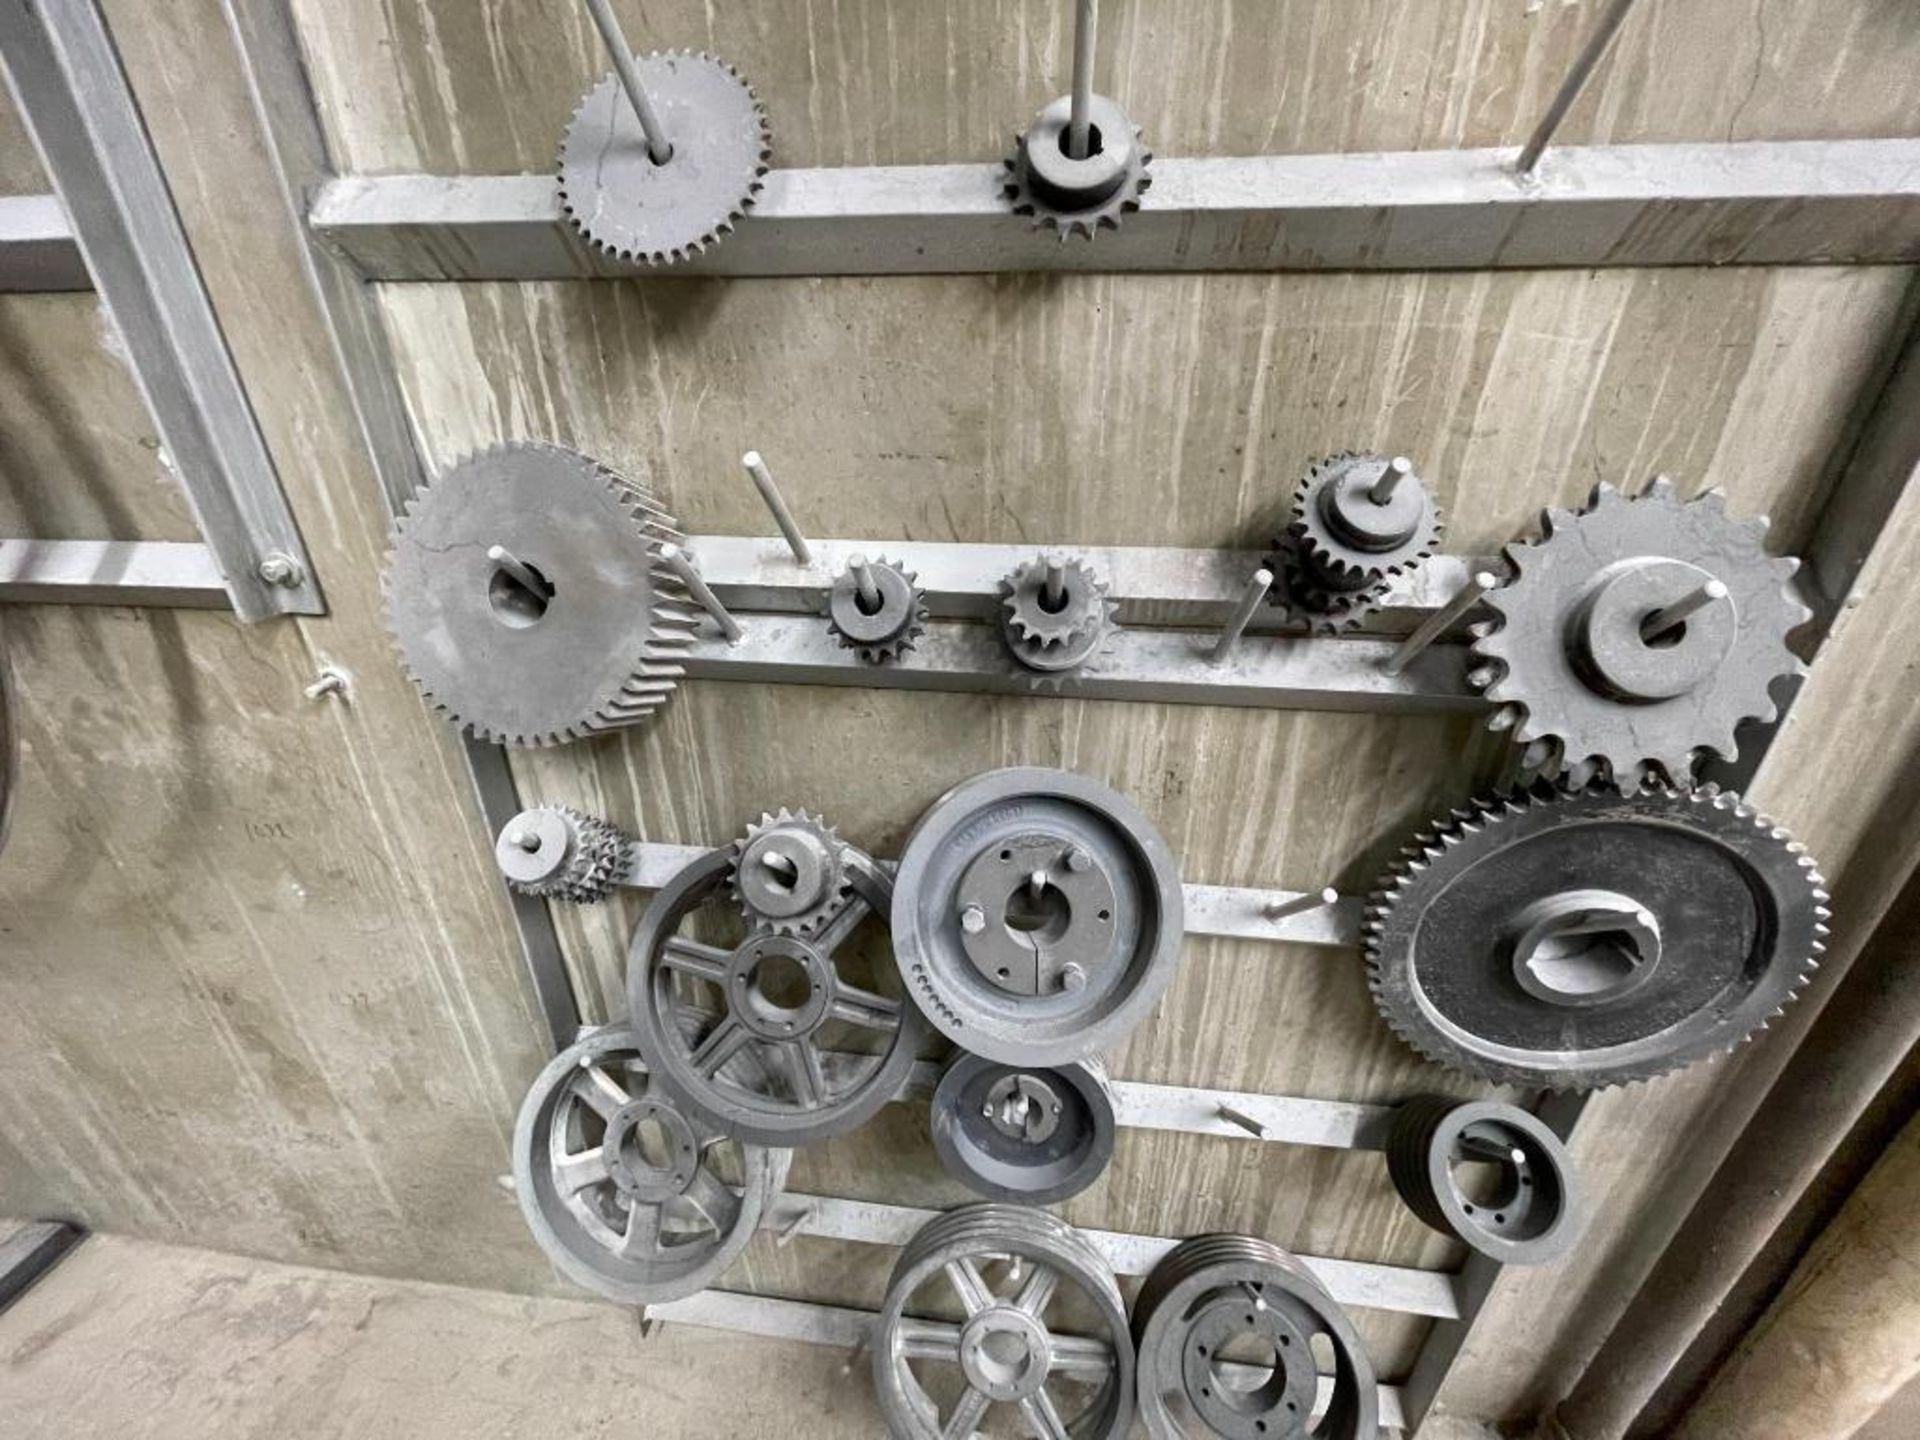 gears and pulleys - Image 13 of 17